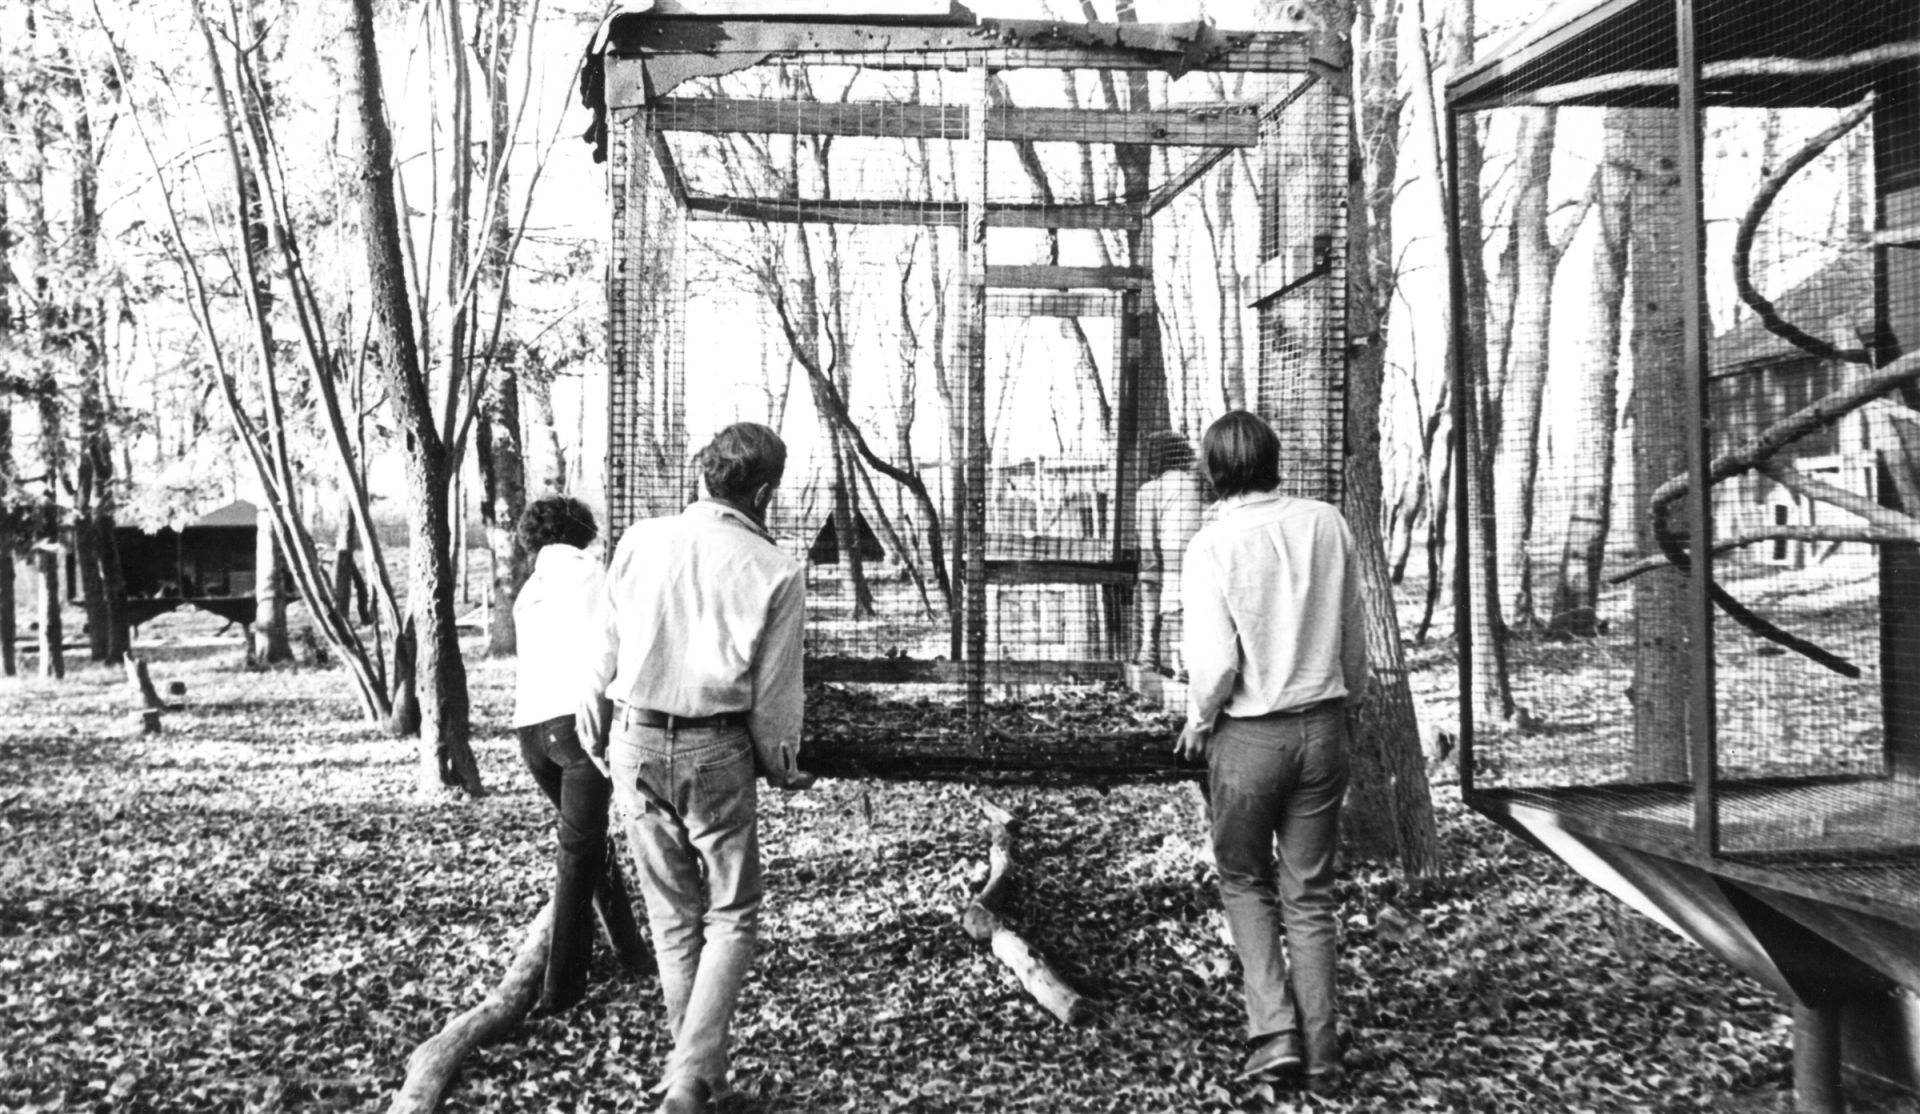 Students installing an enclosure at the Trevor Zoo in 1975